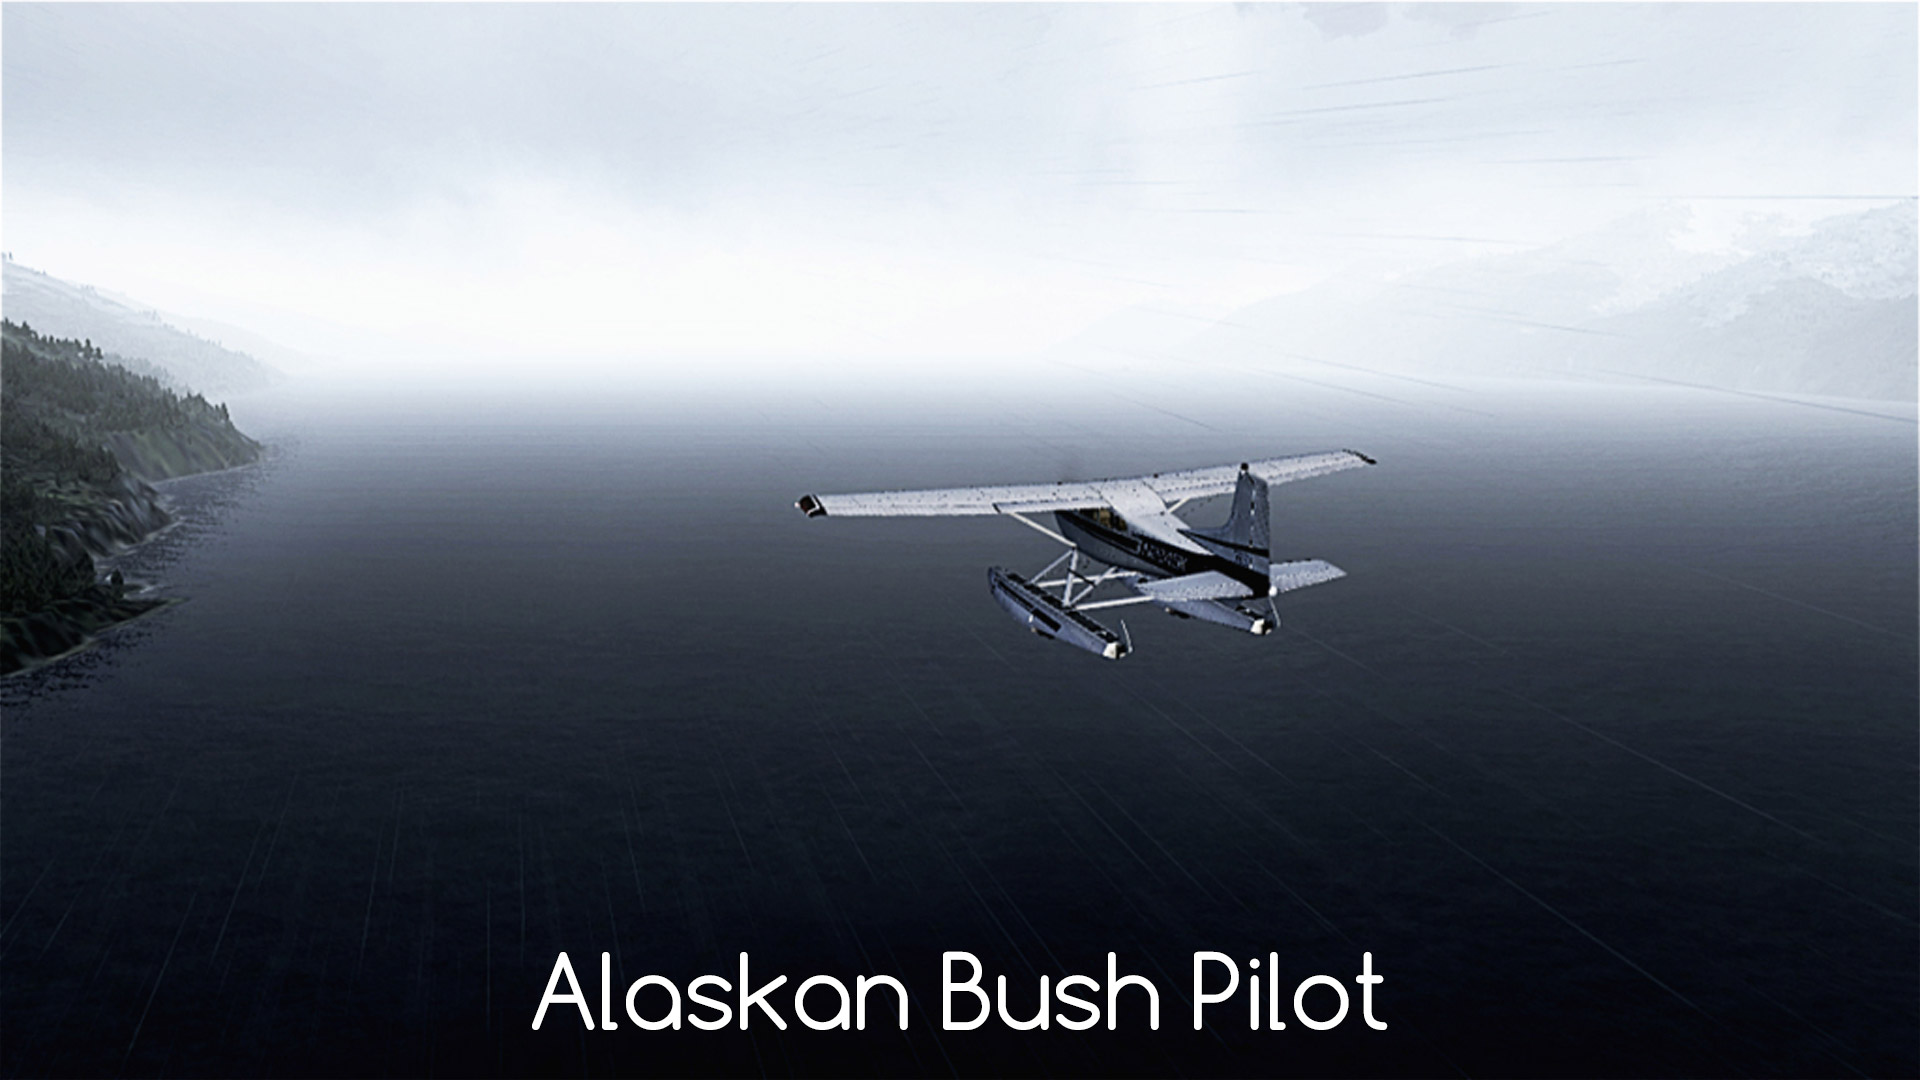 Alaskan Bush Pilot - how to set up your FSX